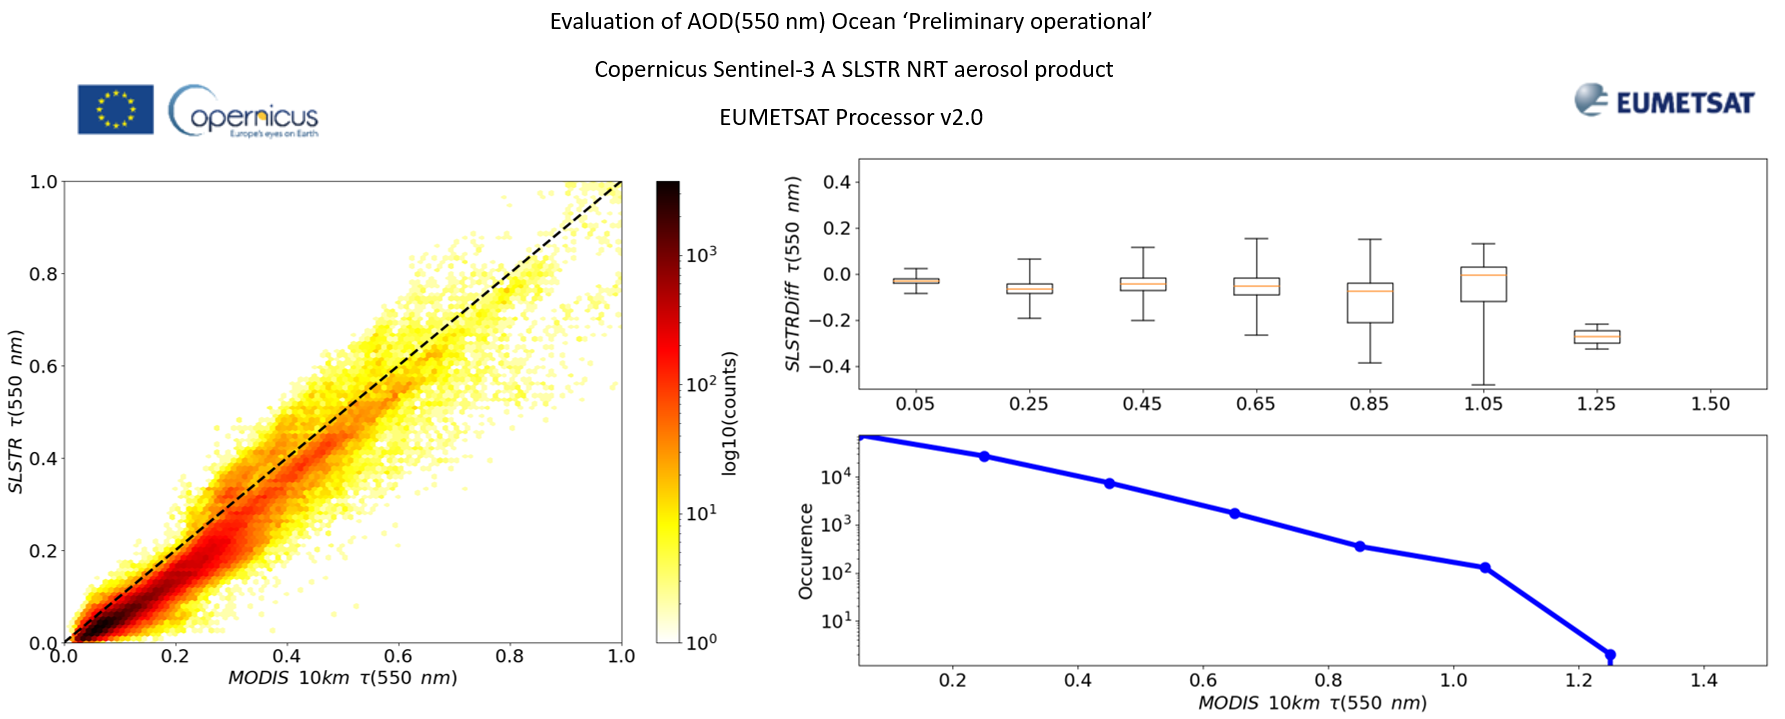 Near simultaneous and spatially collocated match-up Sentinel-3A SLSTR NRT and Terra MODIS AOD (550 nm) over the Atlantic Ocean over two months (Dec 2019-Jan 2020). Left: Scatterplot, right: Box plot